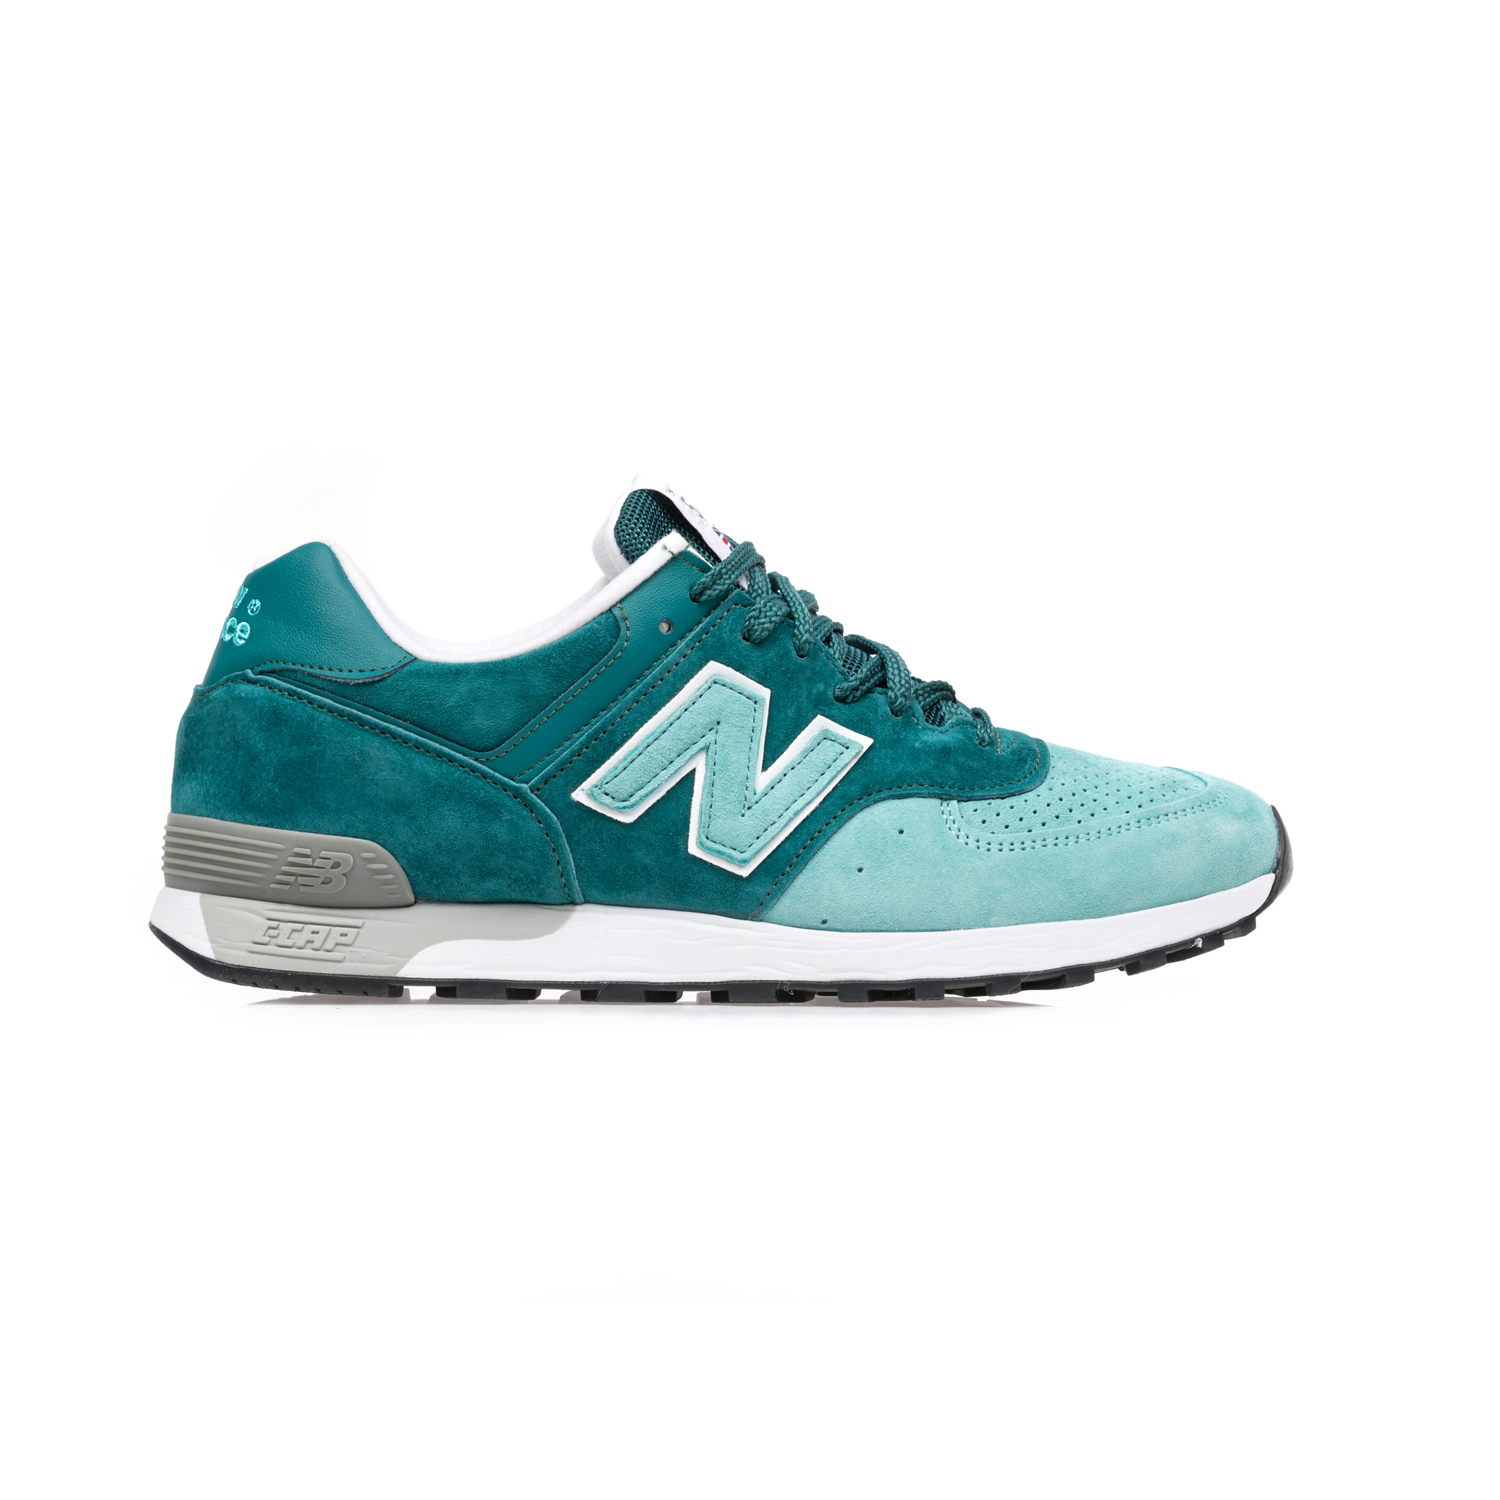 NEW BALANCE - Ανδρικά sneakers NEW BALANCE πράσινα ανδρικά παπούτσια sneakers